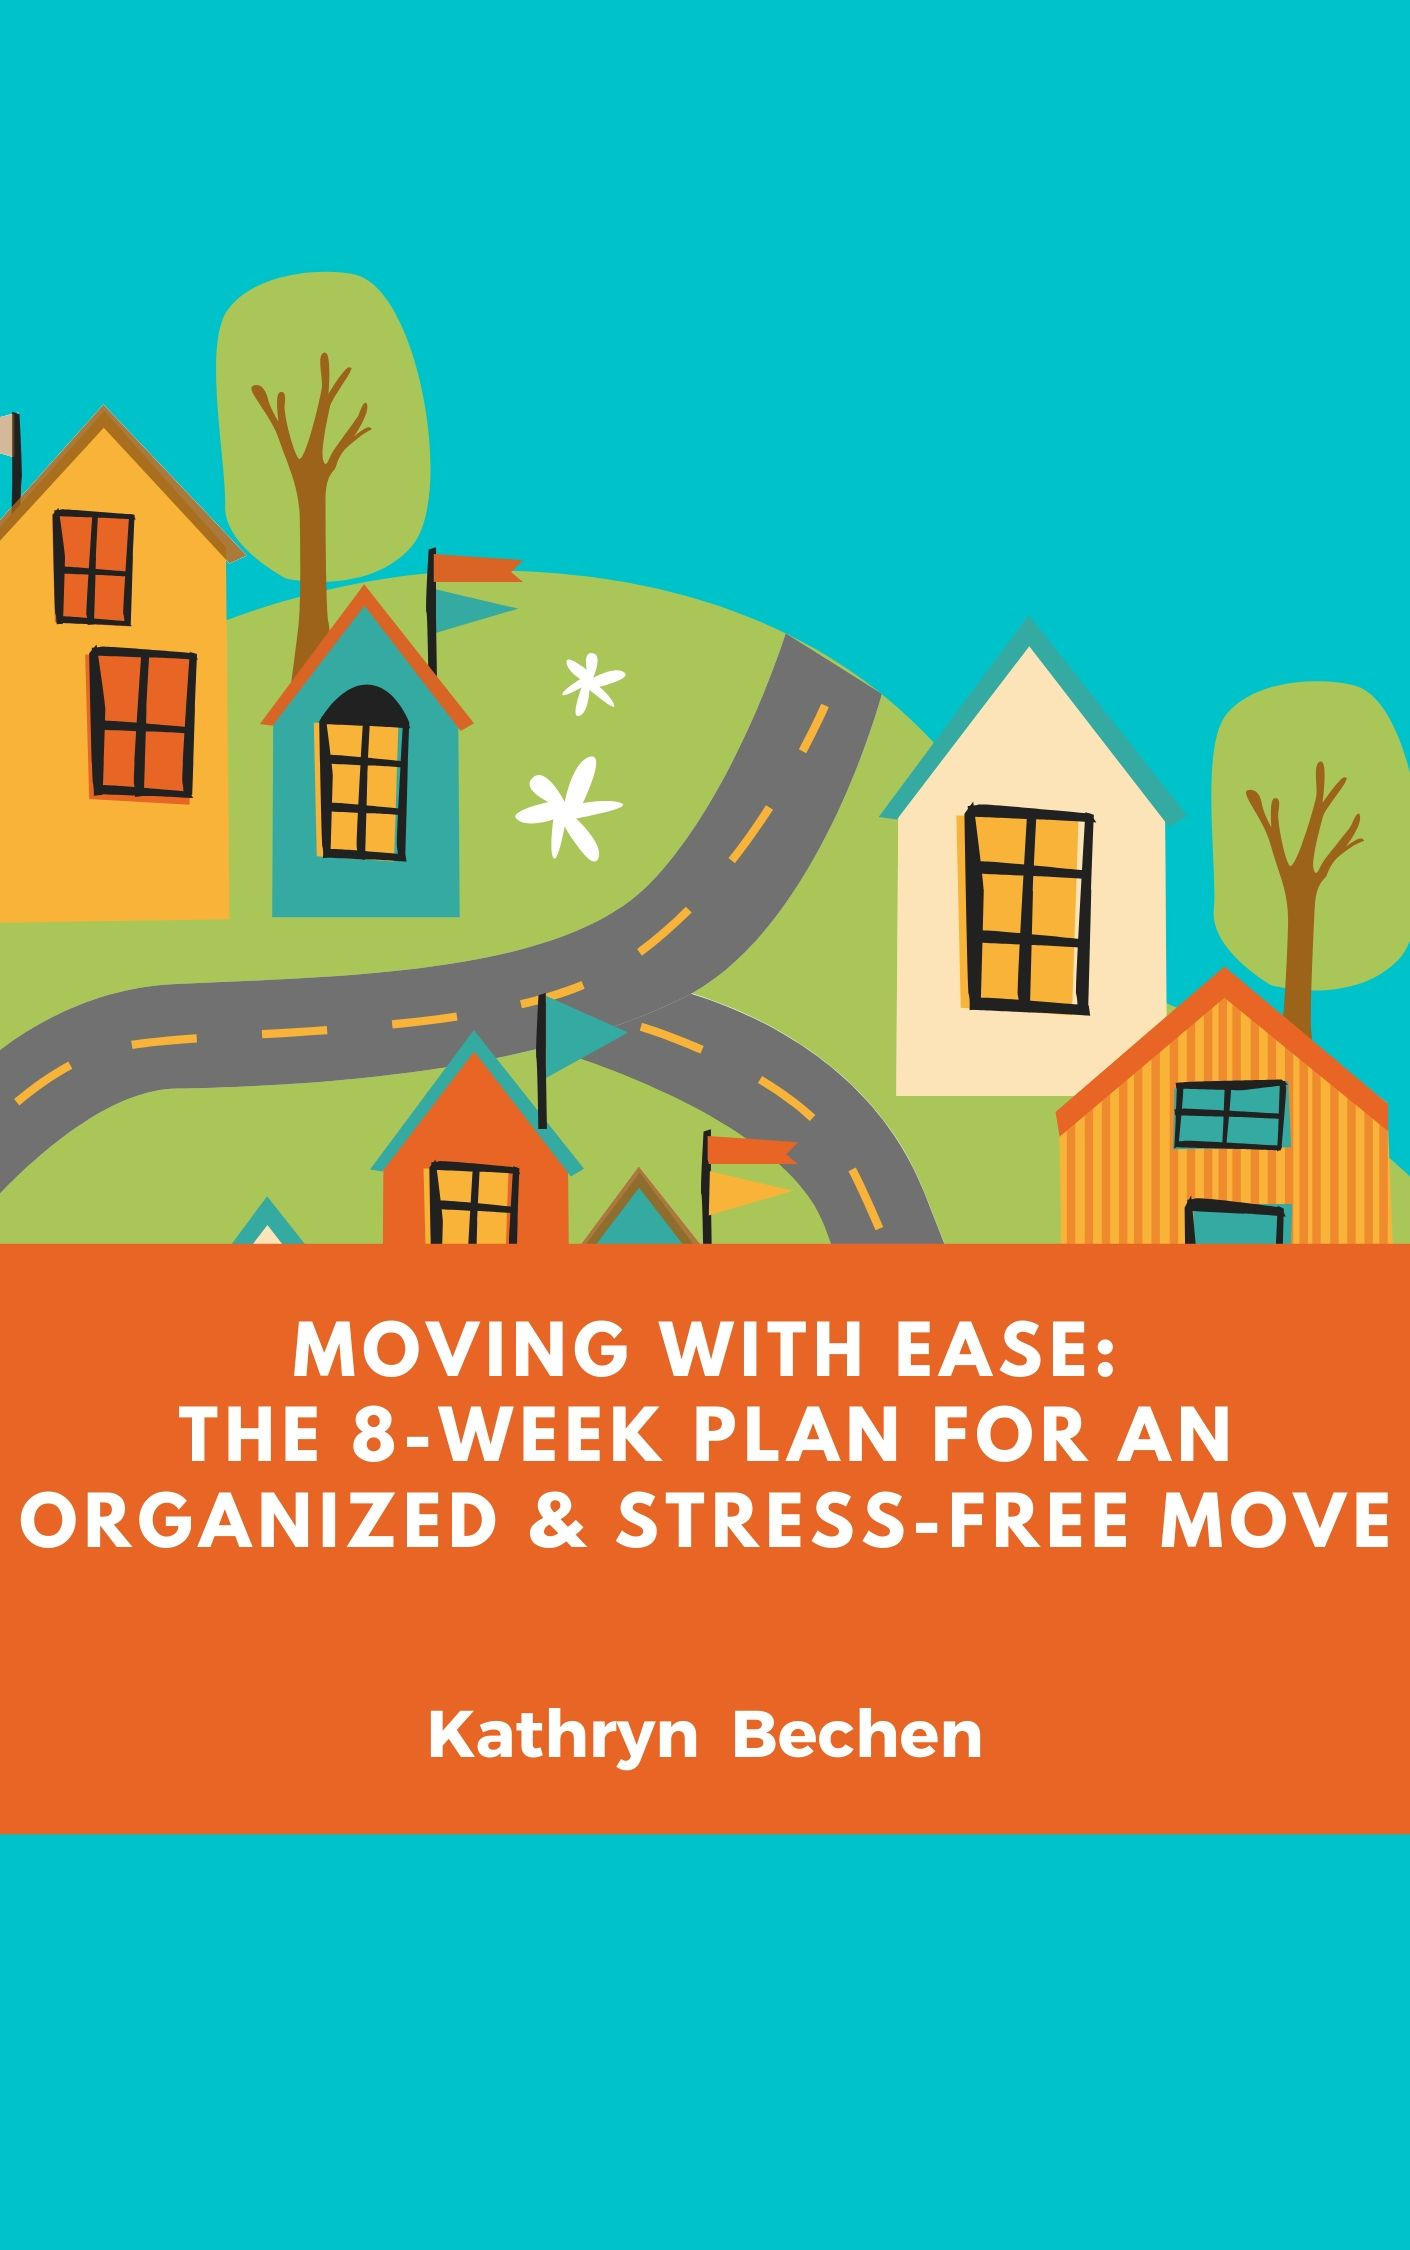 Moving With Ease Kathryn Bechen